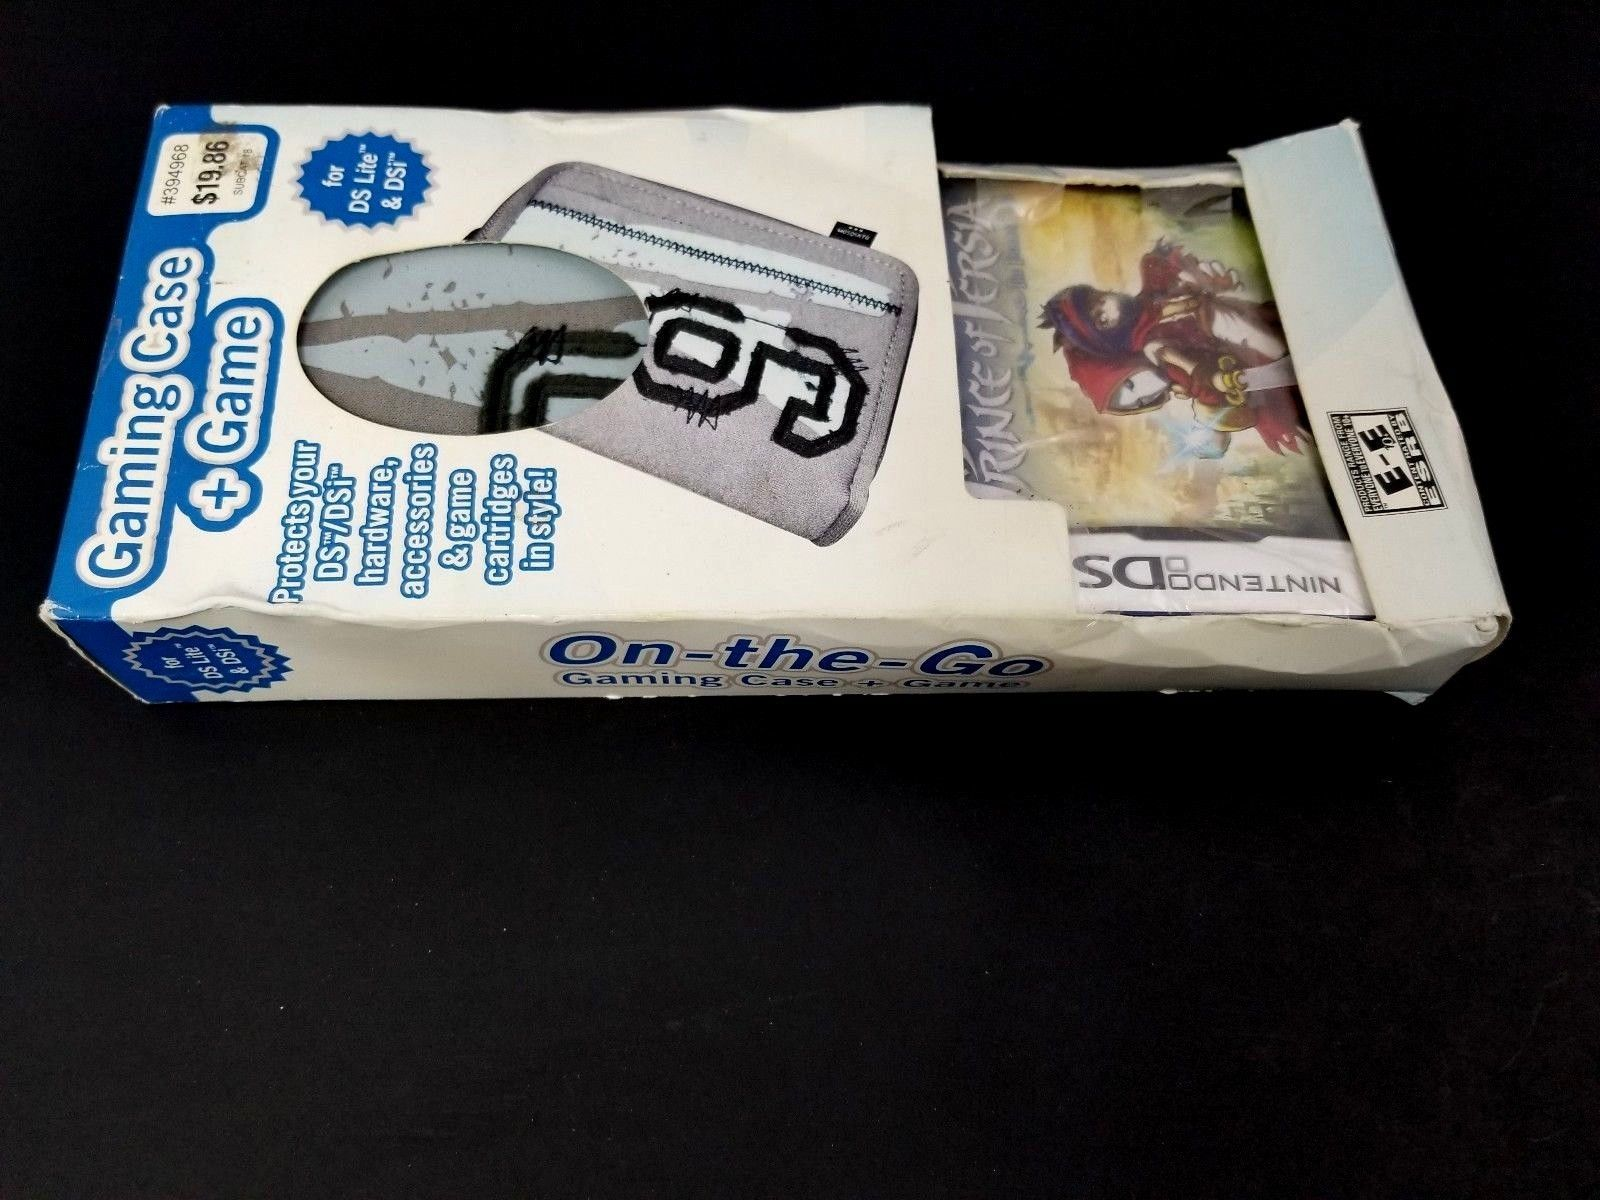 Nintendo DS Lite & DSI On the Go Gaming Case + Game Prince of Persia DS Game New